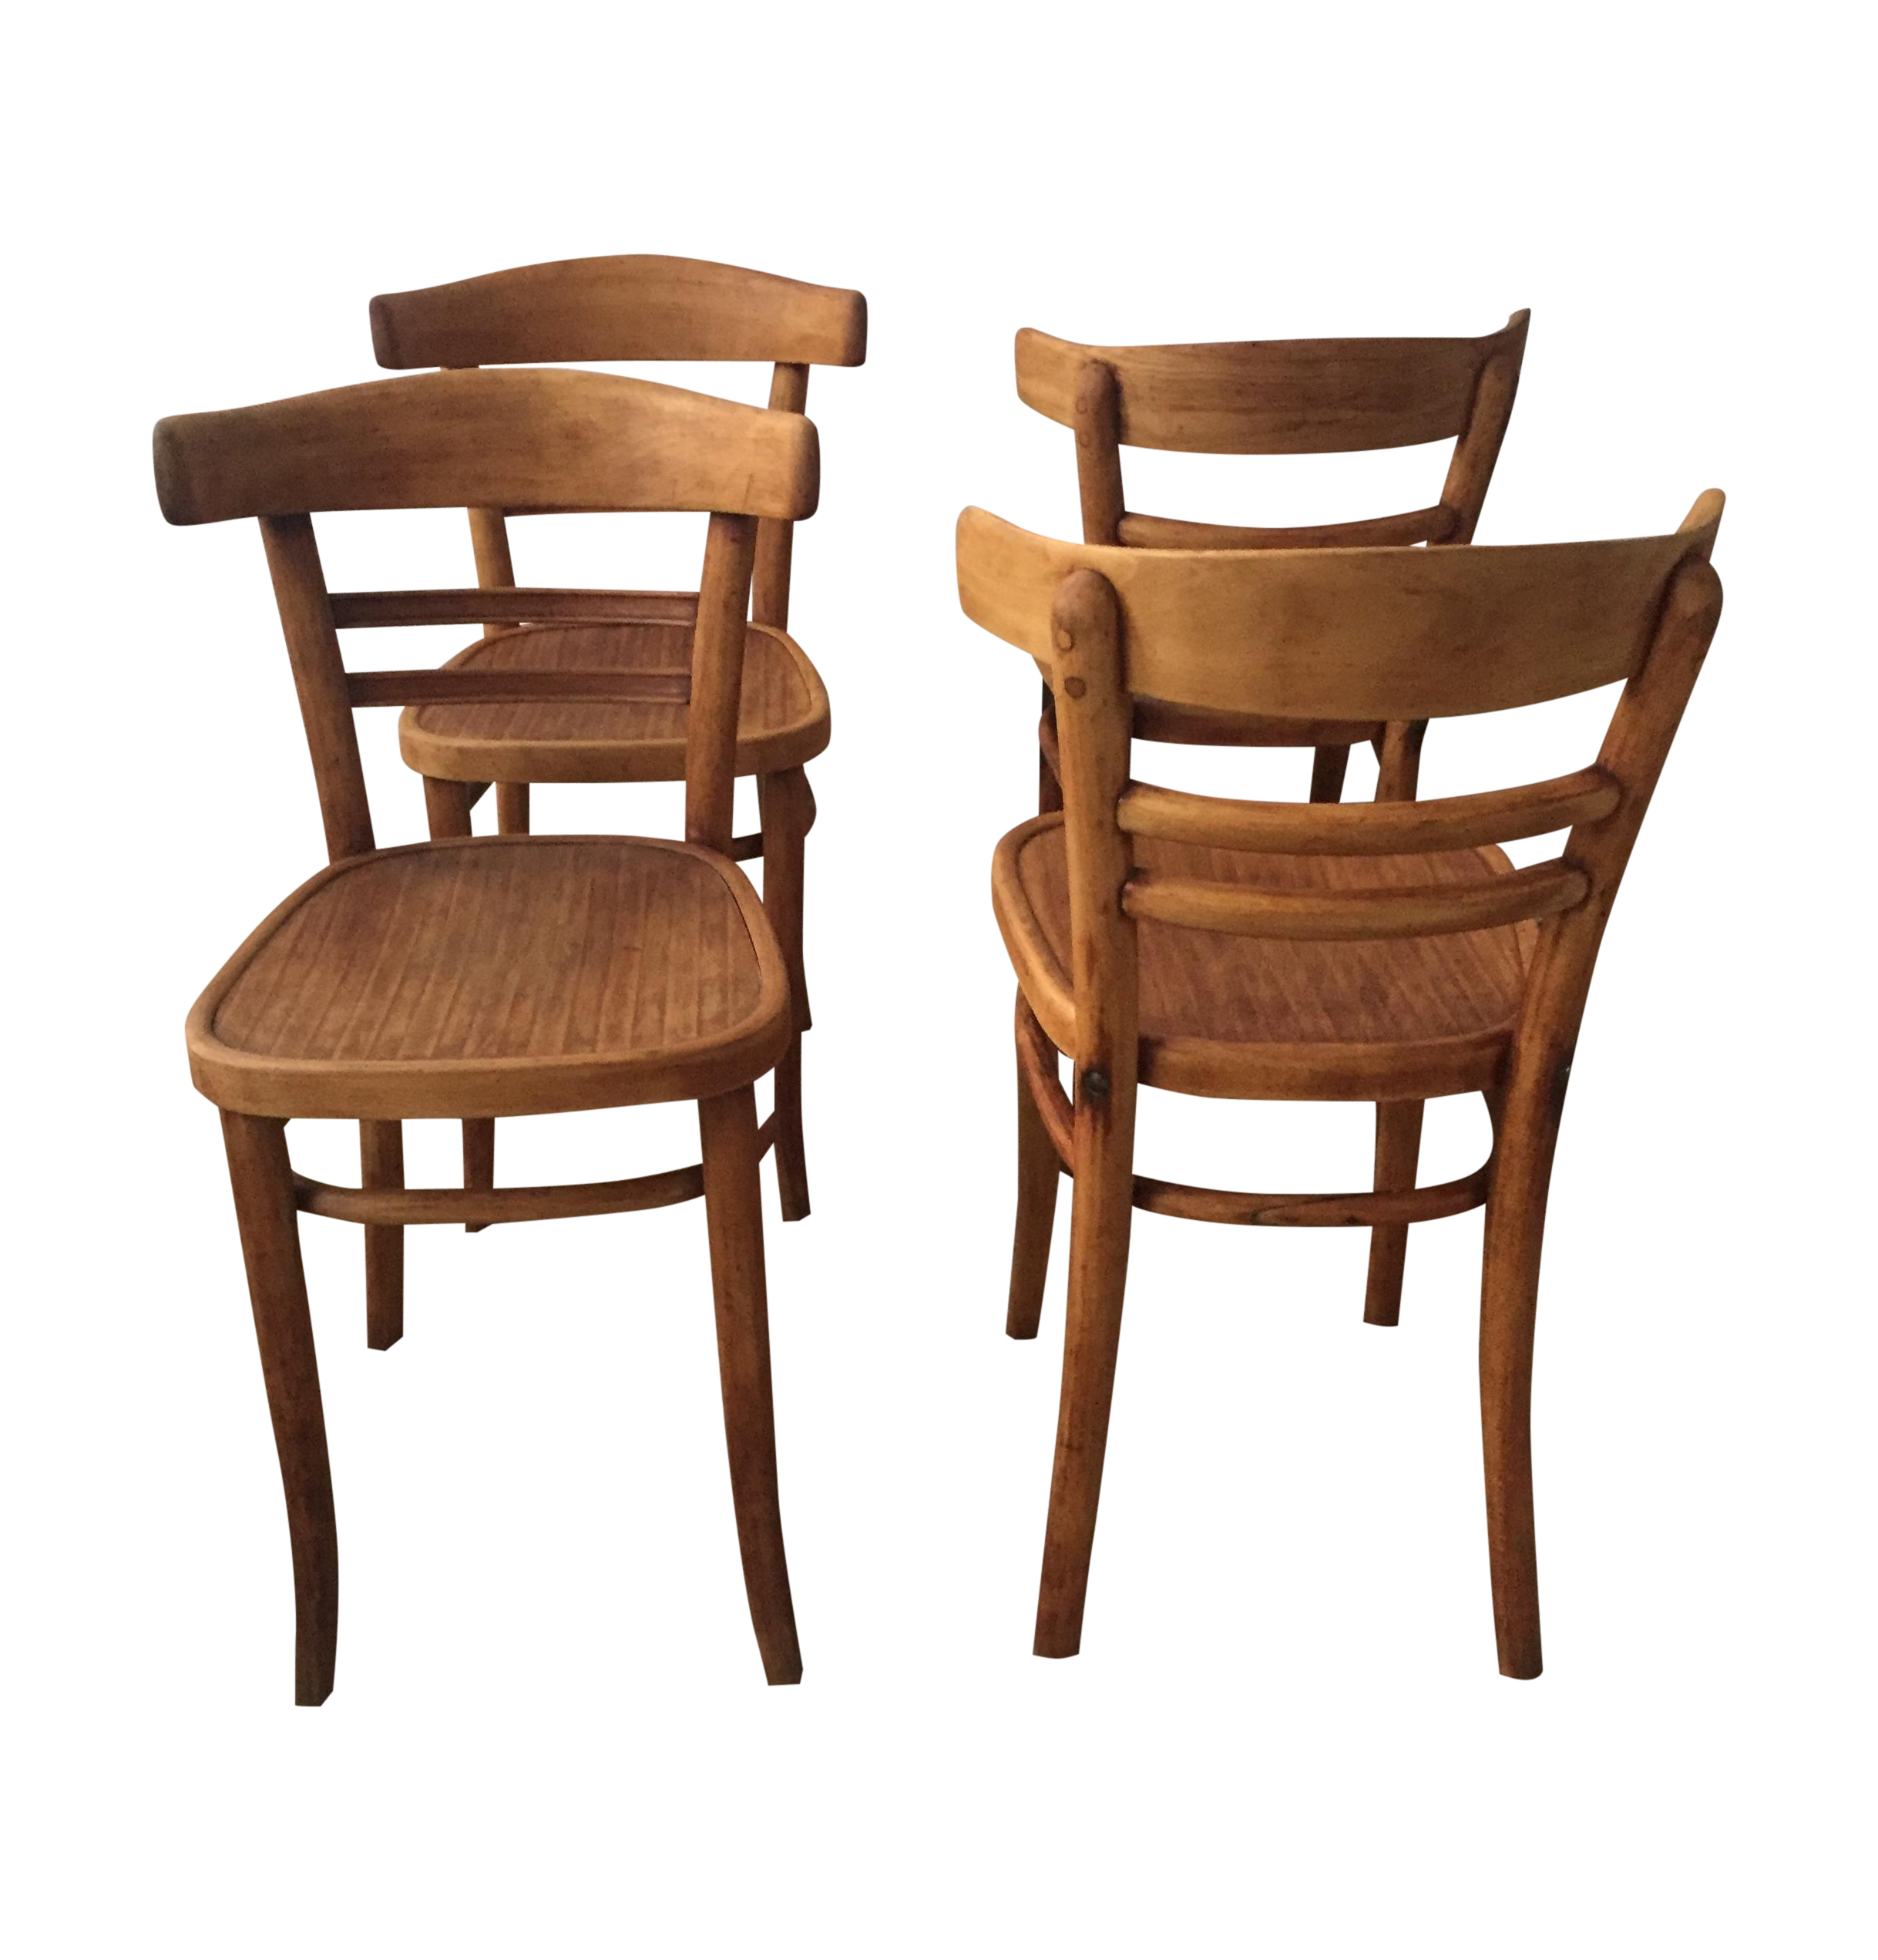 Mundus and J. u0026 J. Kohn Chairs - Set of 2  sc 1 st  Chairish & Mundus and J. u0026 J. Kohn Chairs - Set of 2 | Chairish